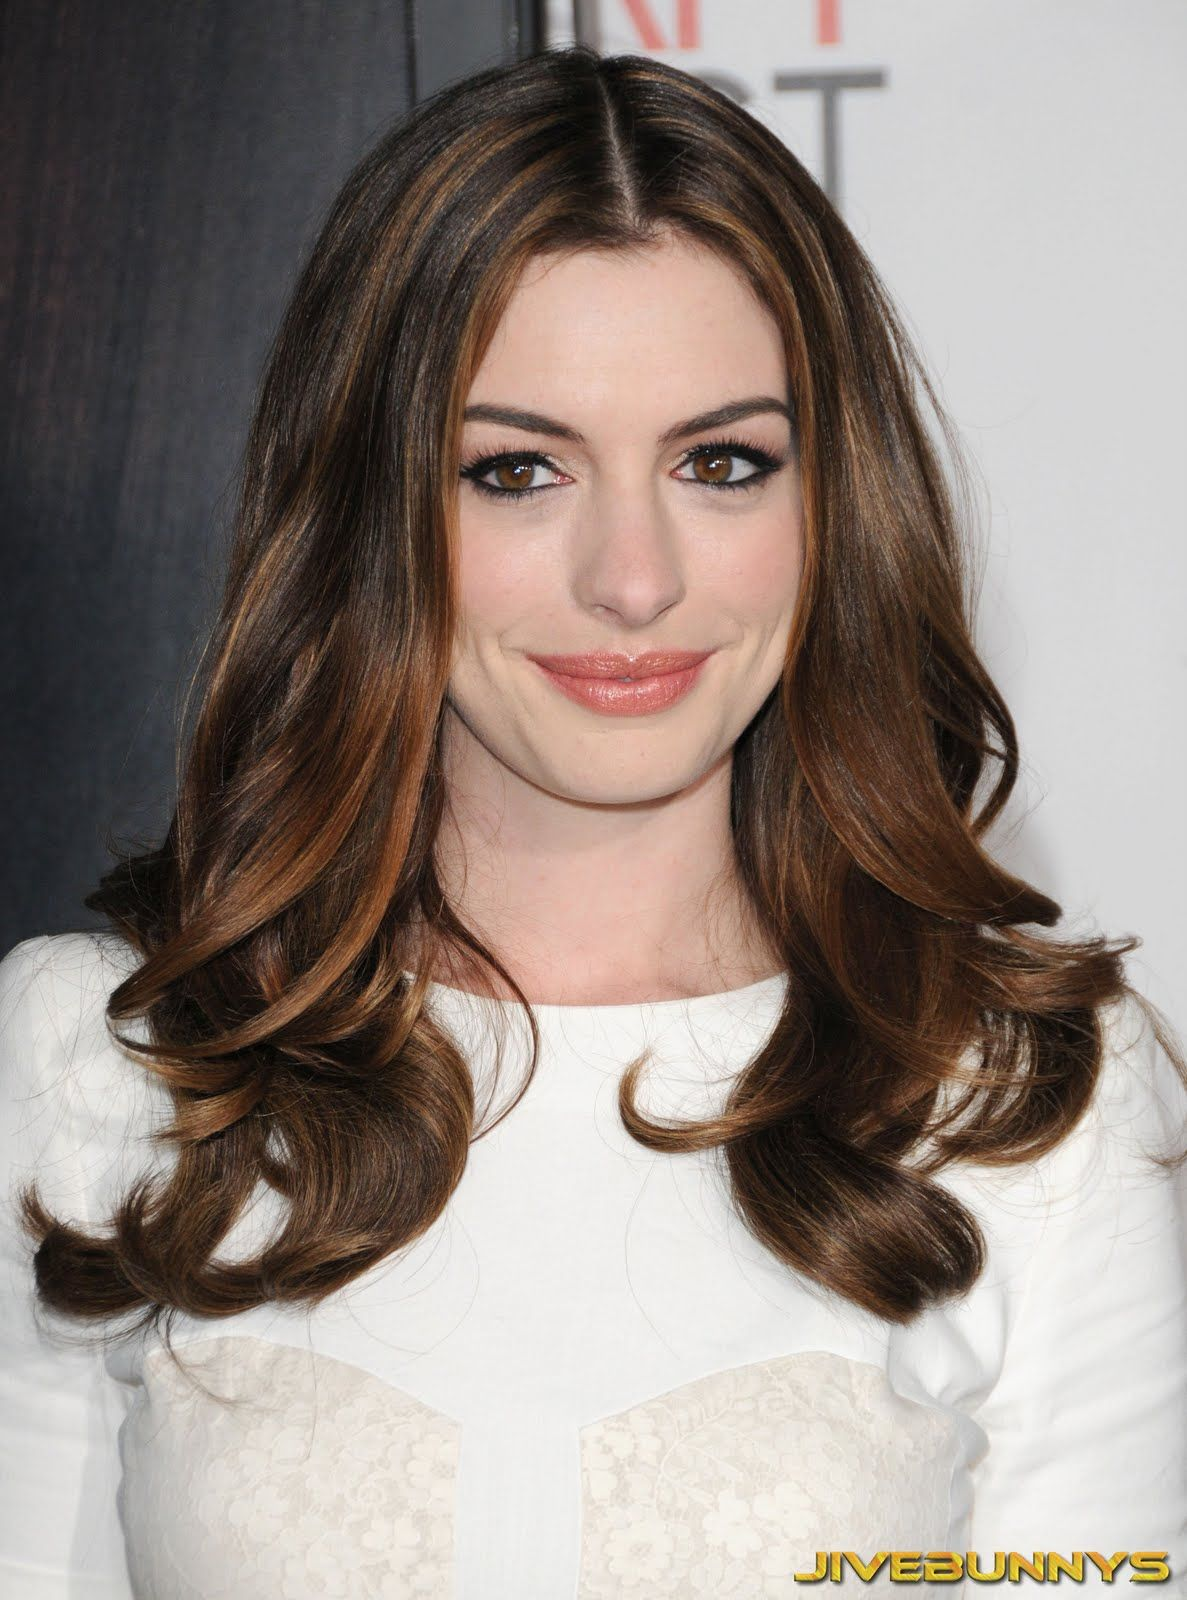 Anne Hathaway Dyes Hair Brunette Anne Hathaway Dyes Hair Brunette new pictures